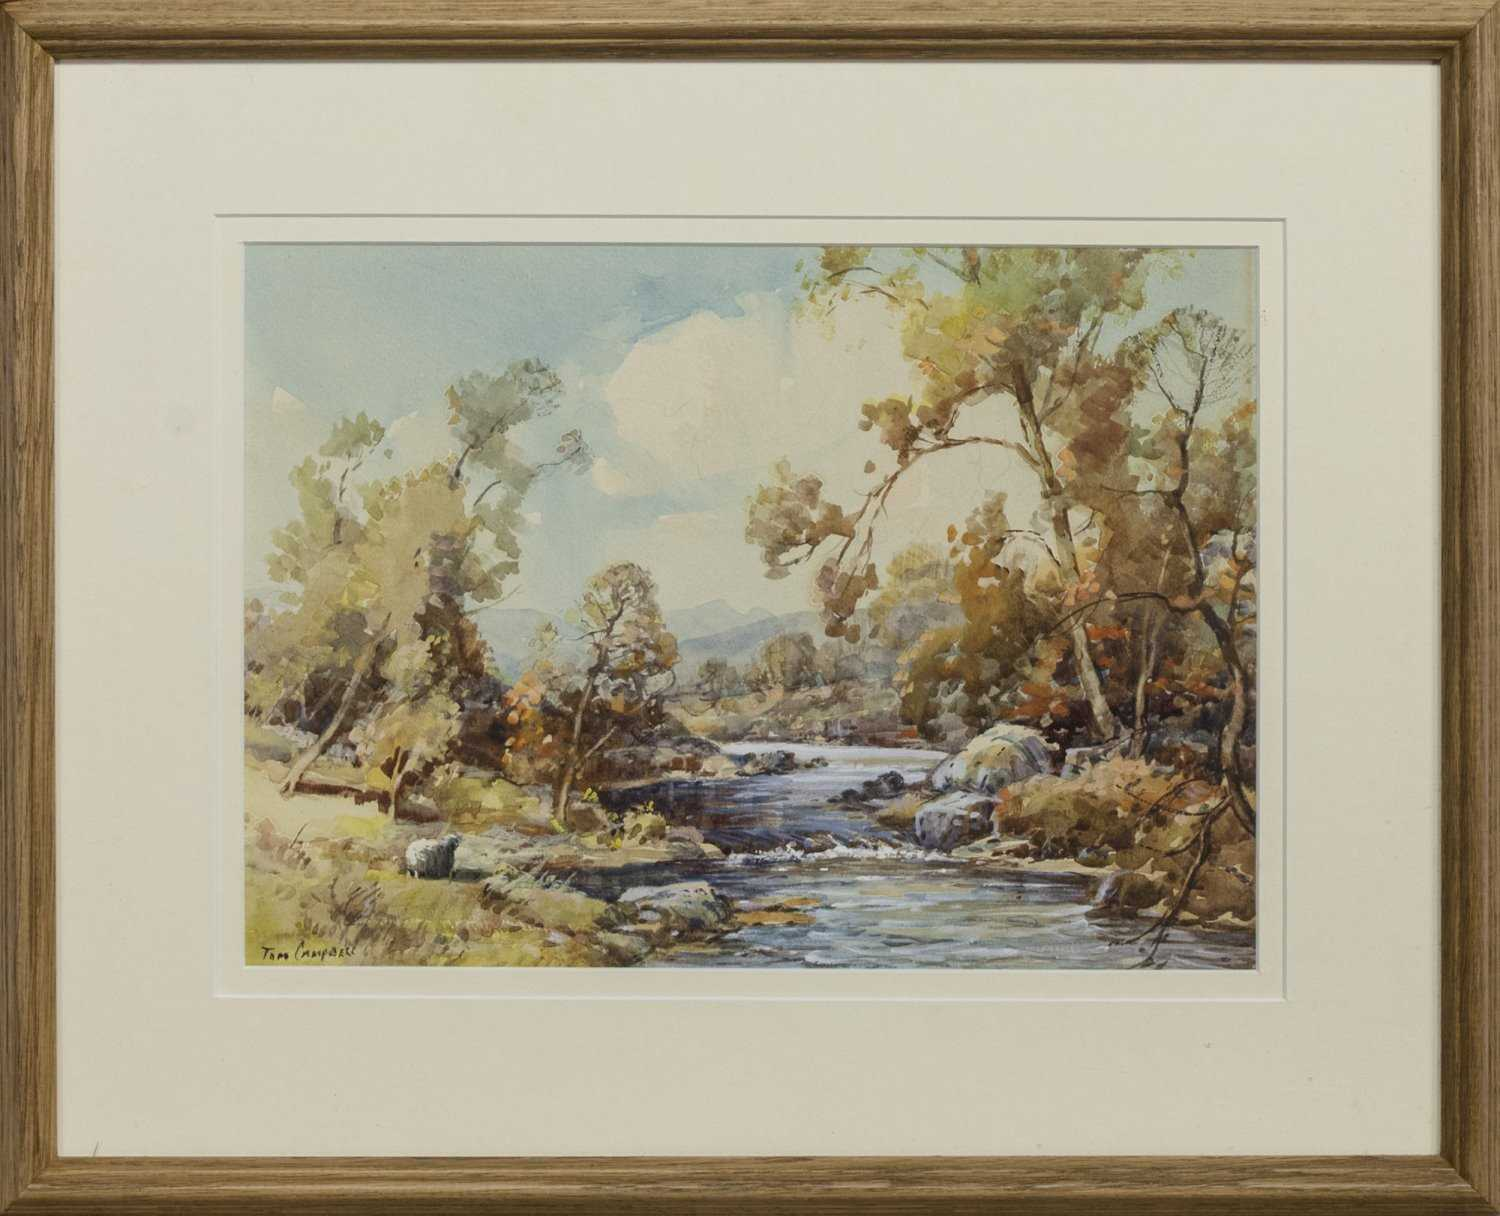 Lot 4 - THE LONE SHEEP, AUTUMN, A WATERCOLOUR BY TOM CAMPBELL